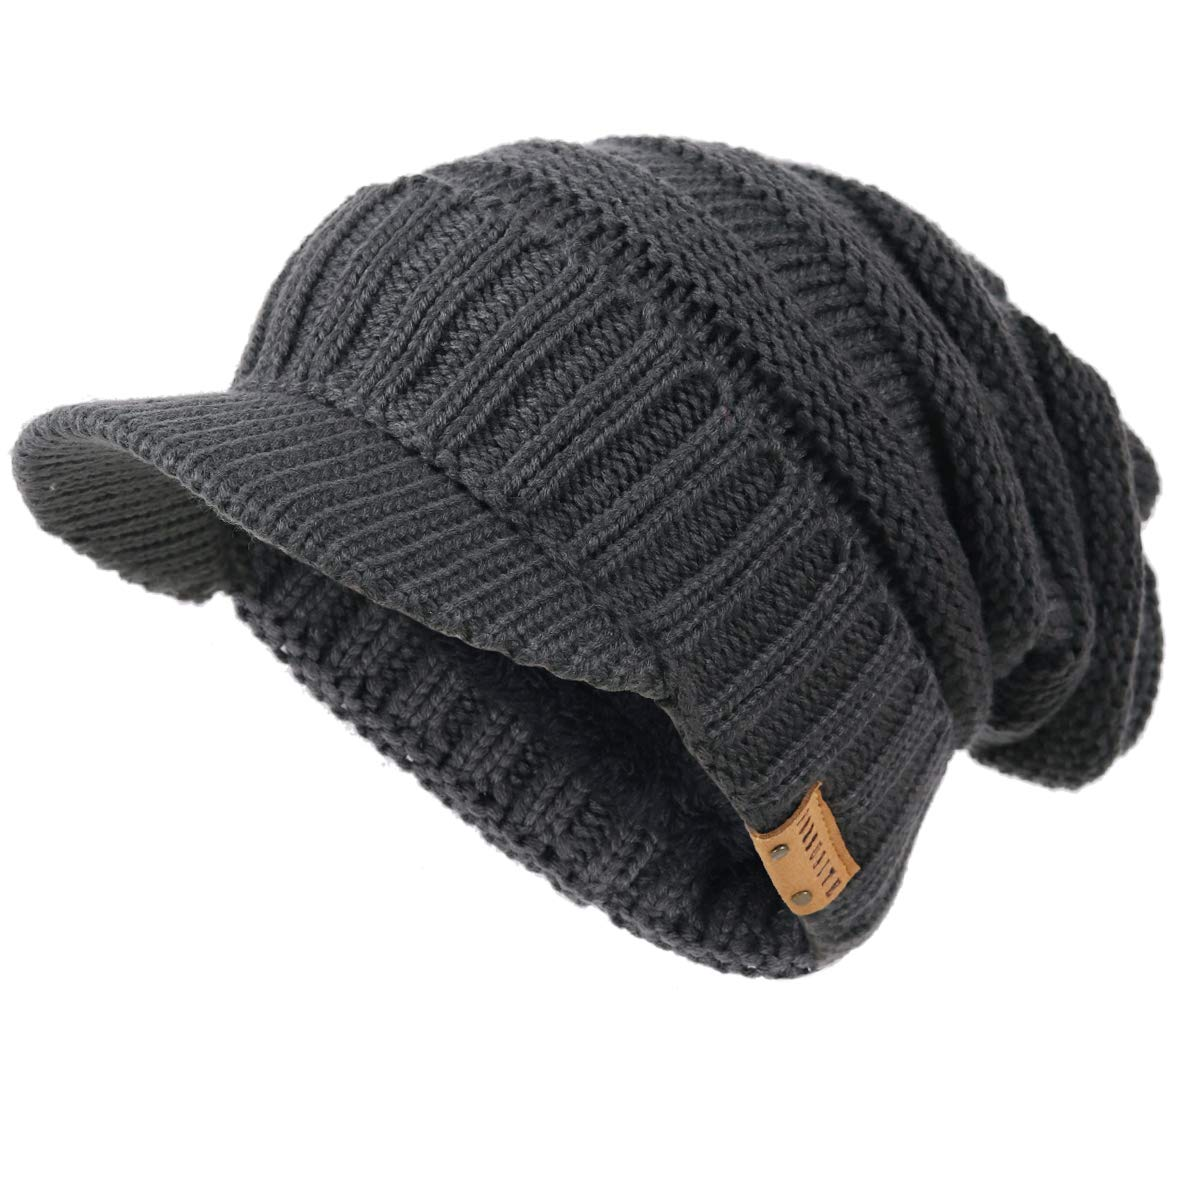 MB CAPS Classic Peaked Ribbed Beanie Knitted Cap HAT 8 Colours